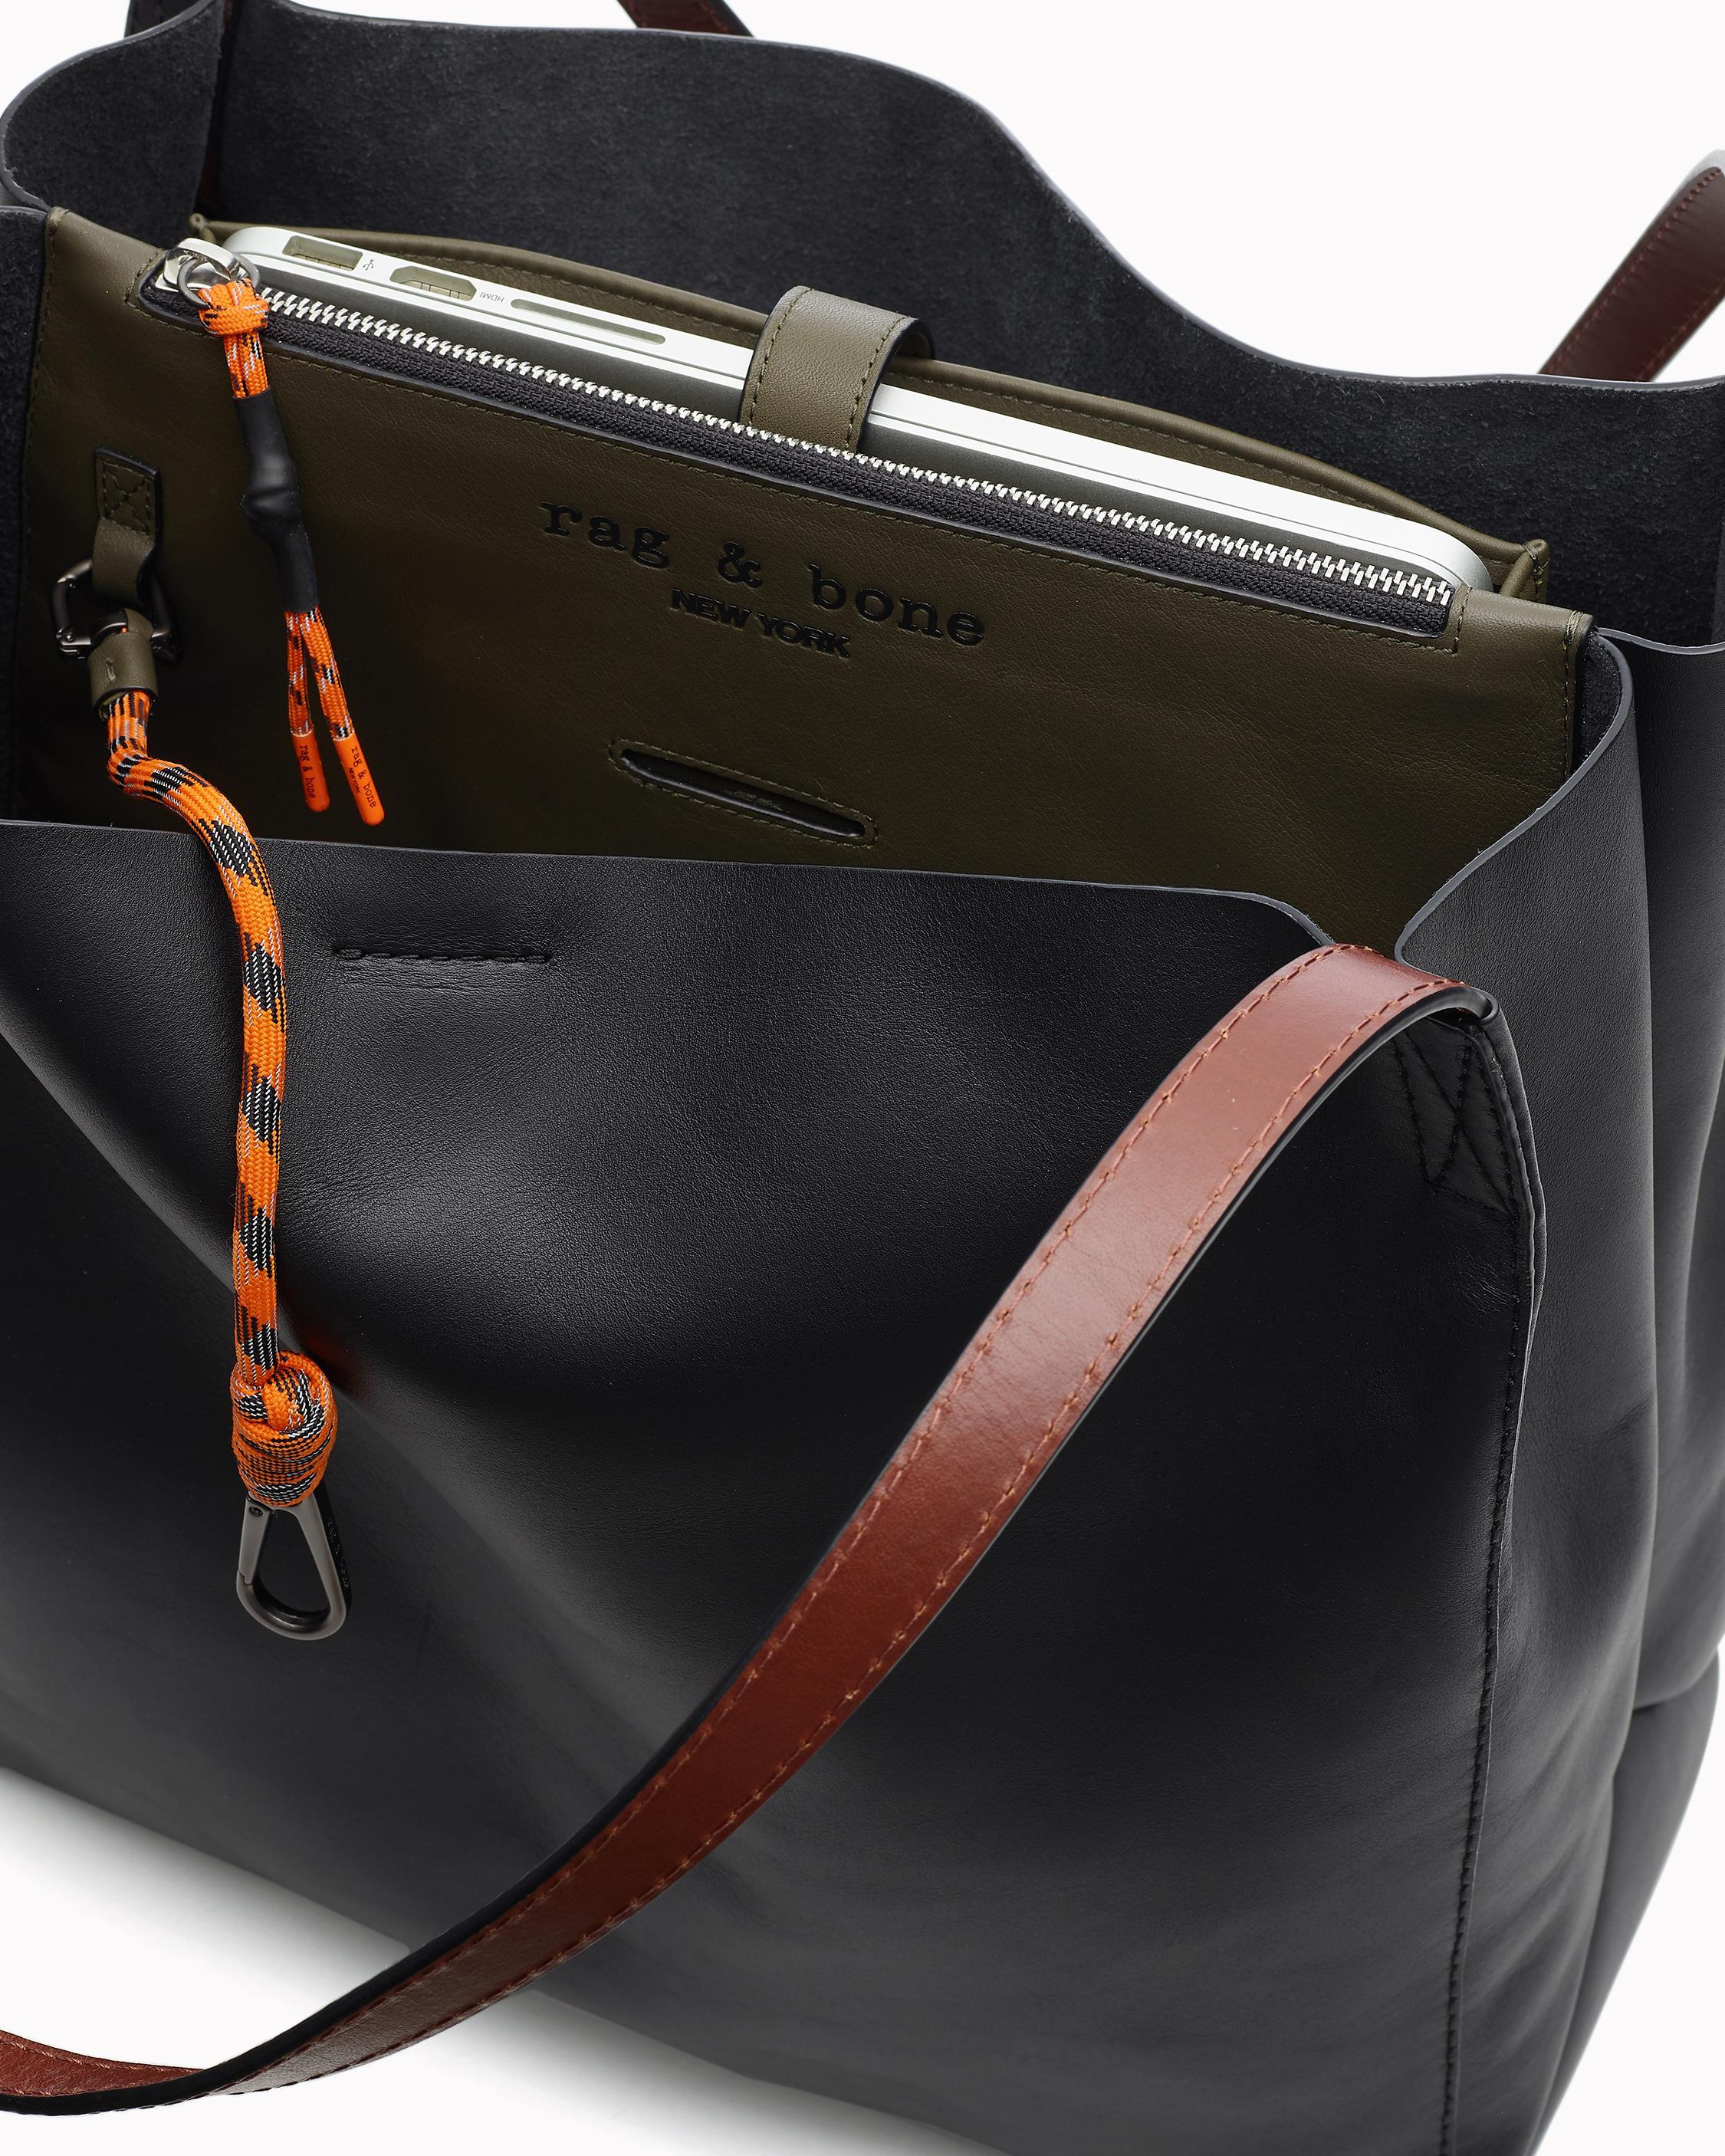 Passenger tote - leather 2